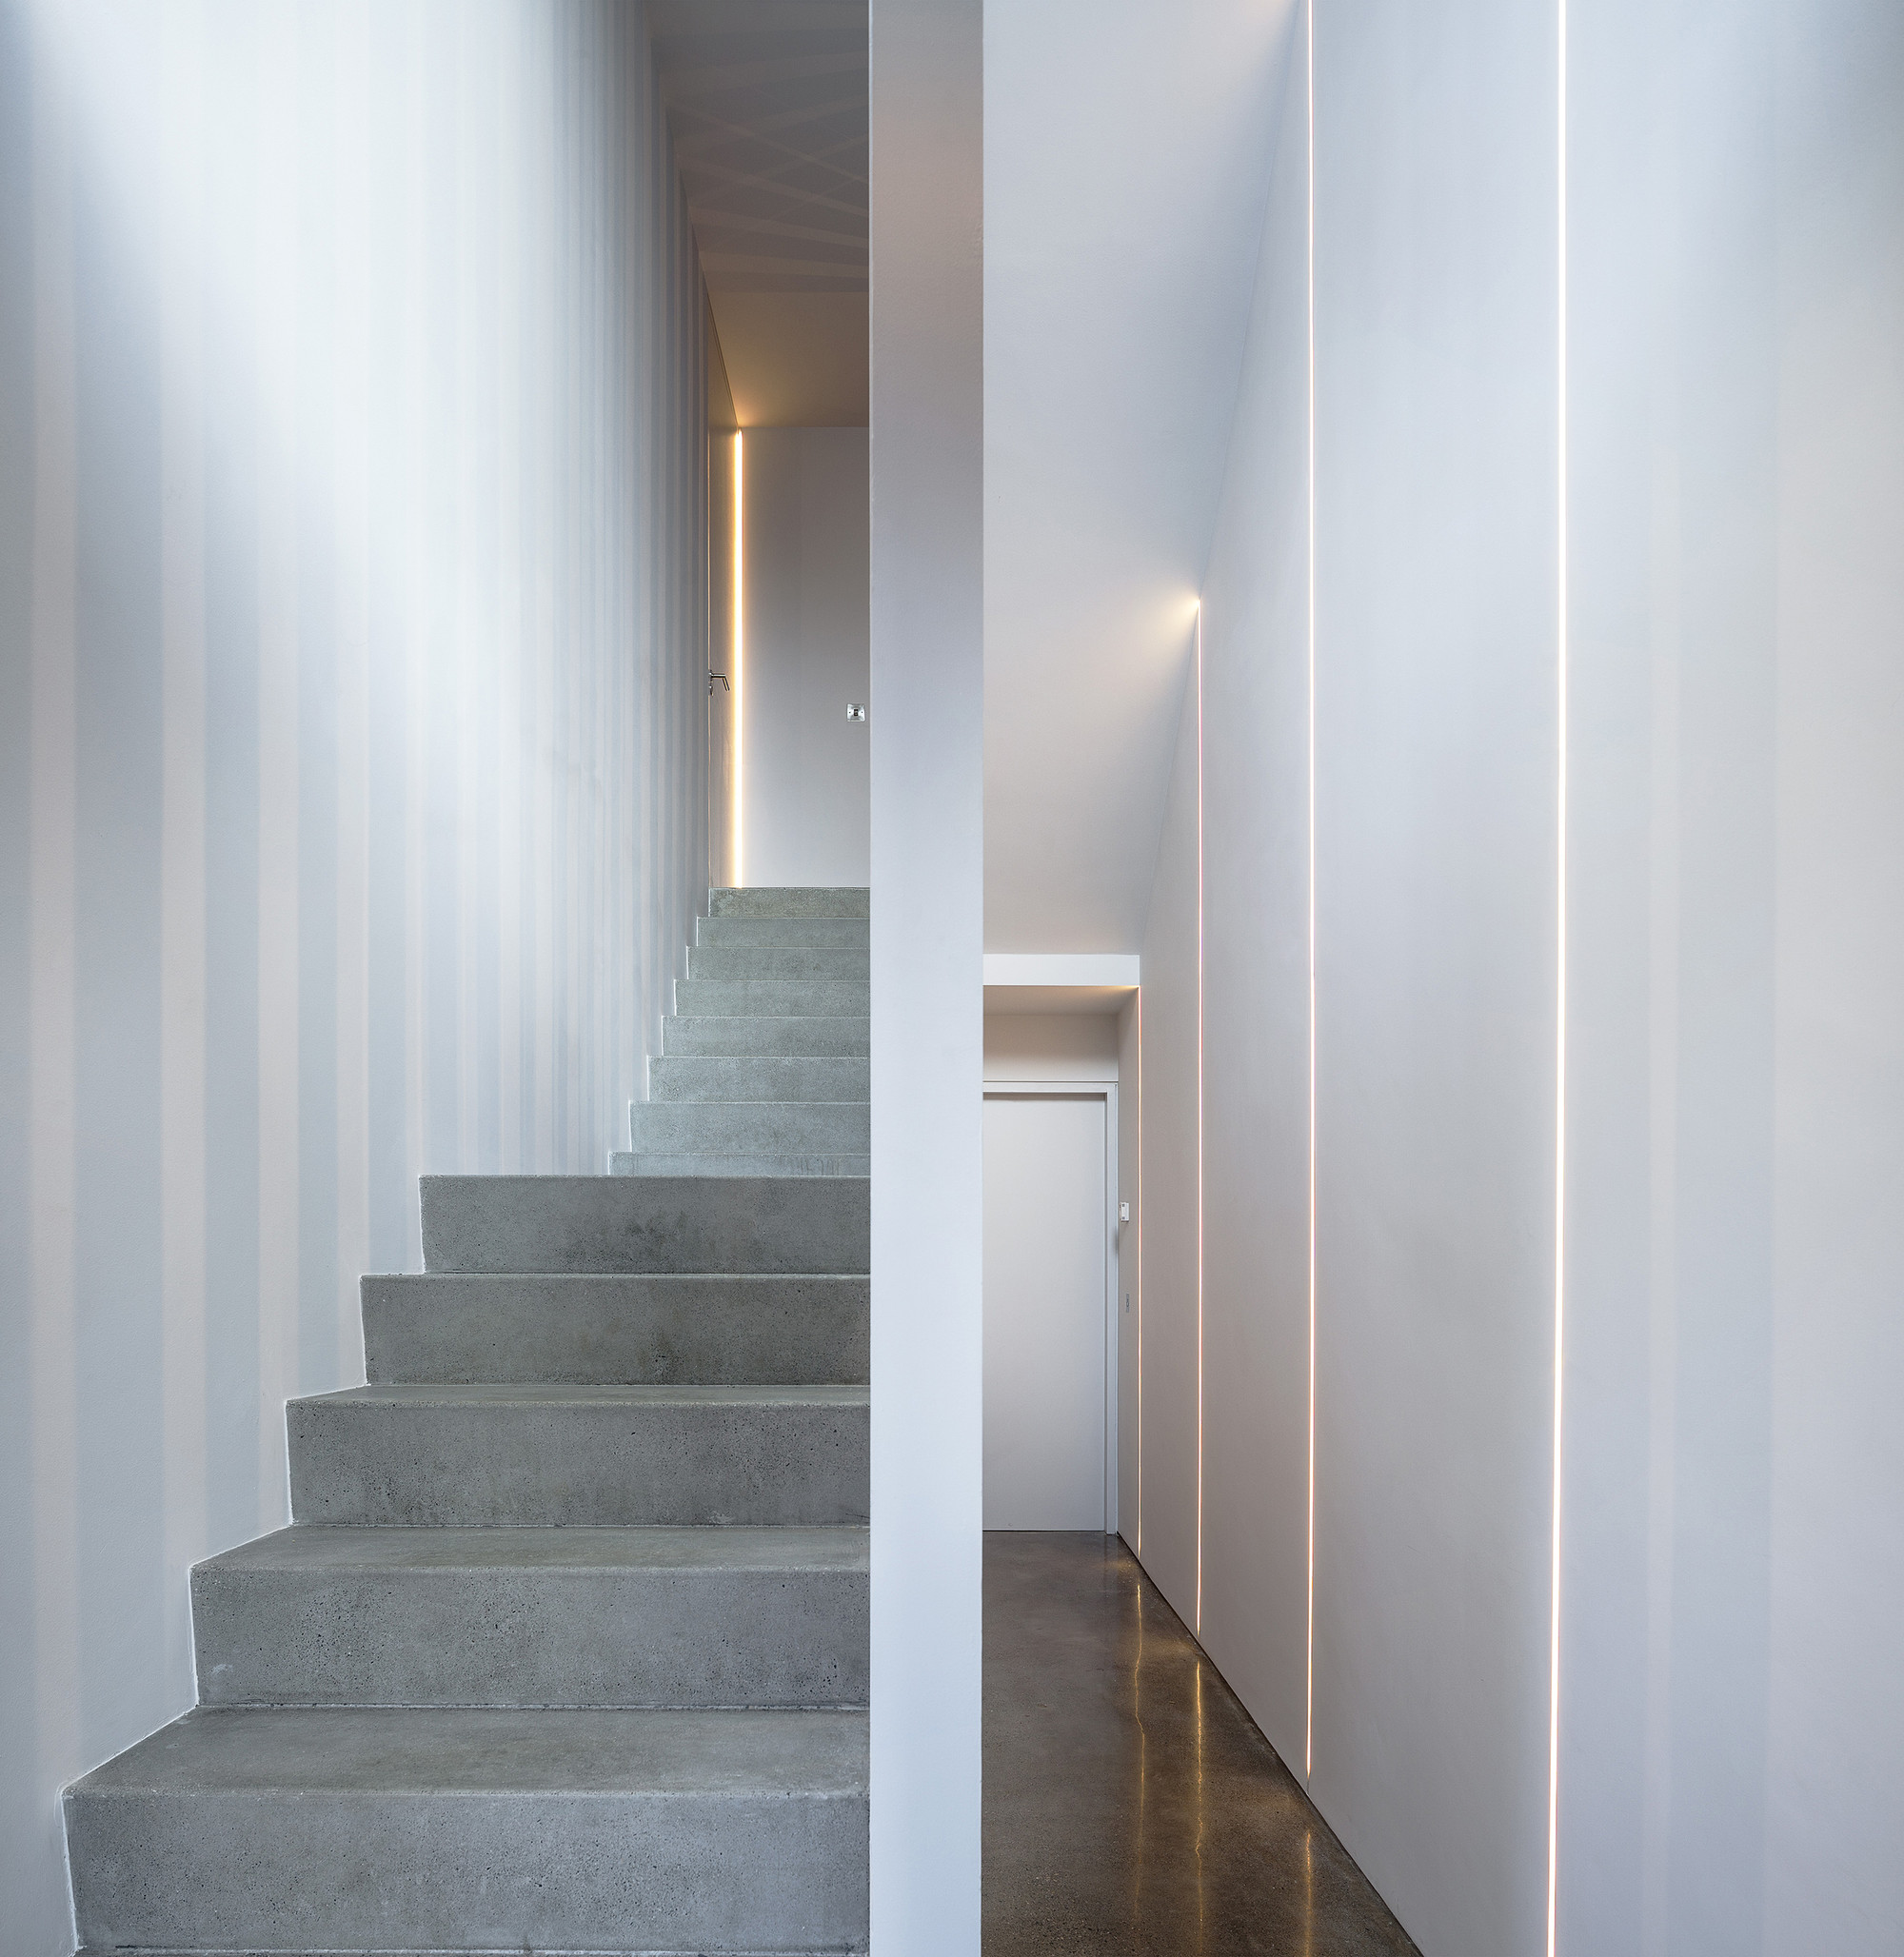 Percy Lane Luxury Homes / ODOS architects   ArchDaily